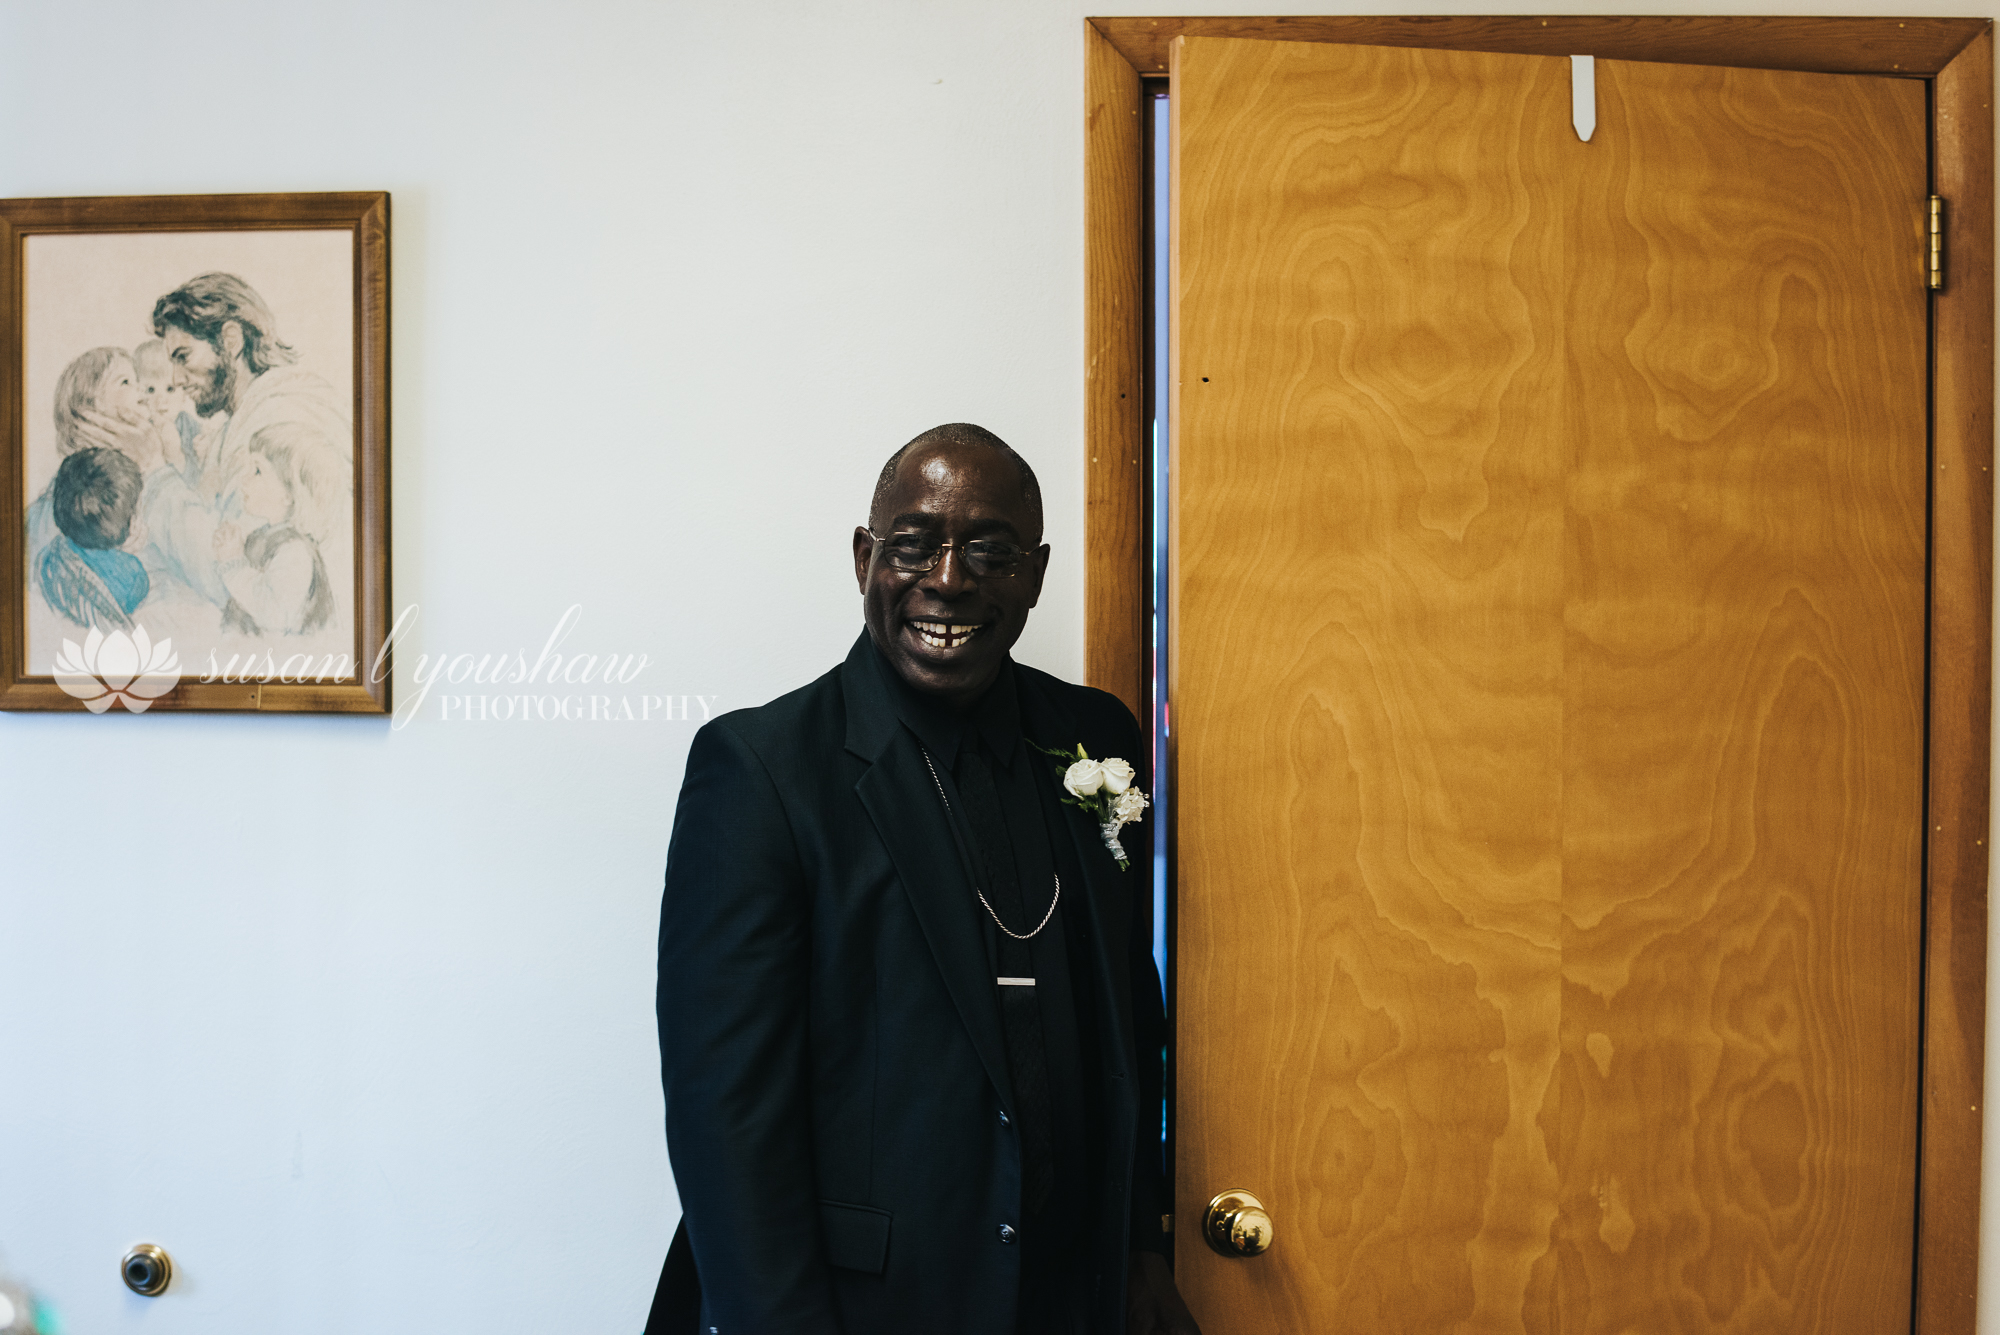 Katelyn and Wes Wedding Photos 07-13-2019 SLY Photography-34.jpg